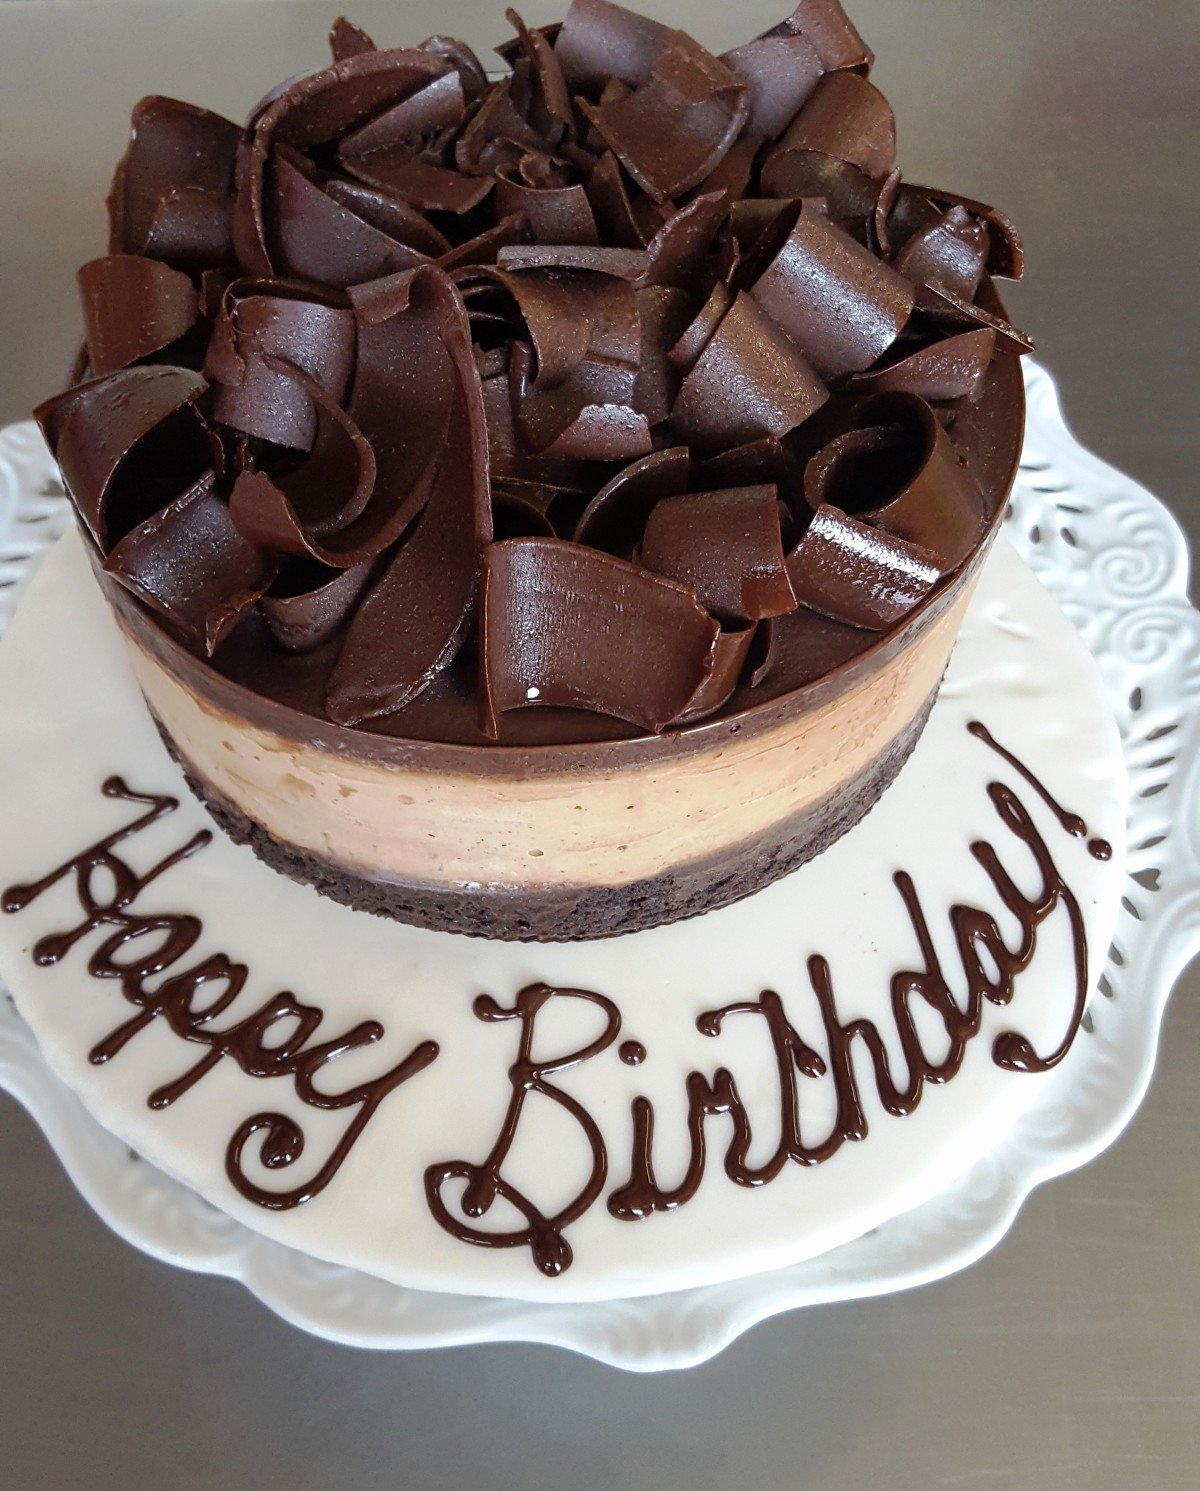 Happy Birthday Candy Images New Happy Birthday Chocolate Cake Gluten Free Specialty Cake